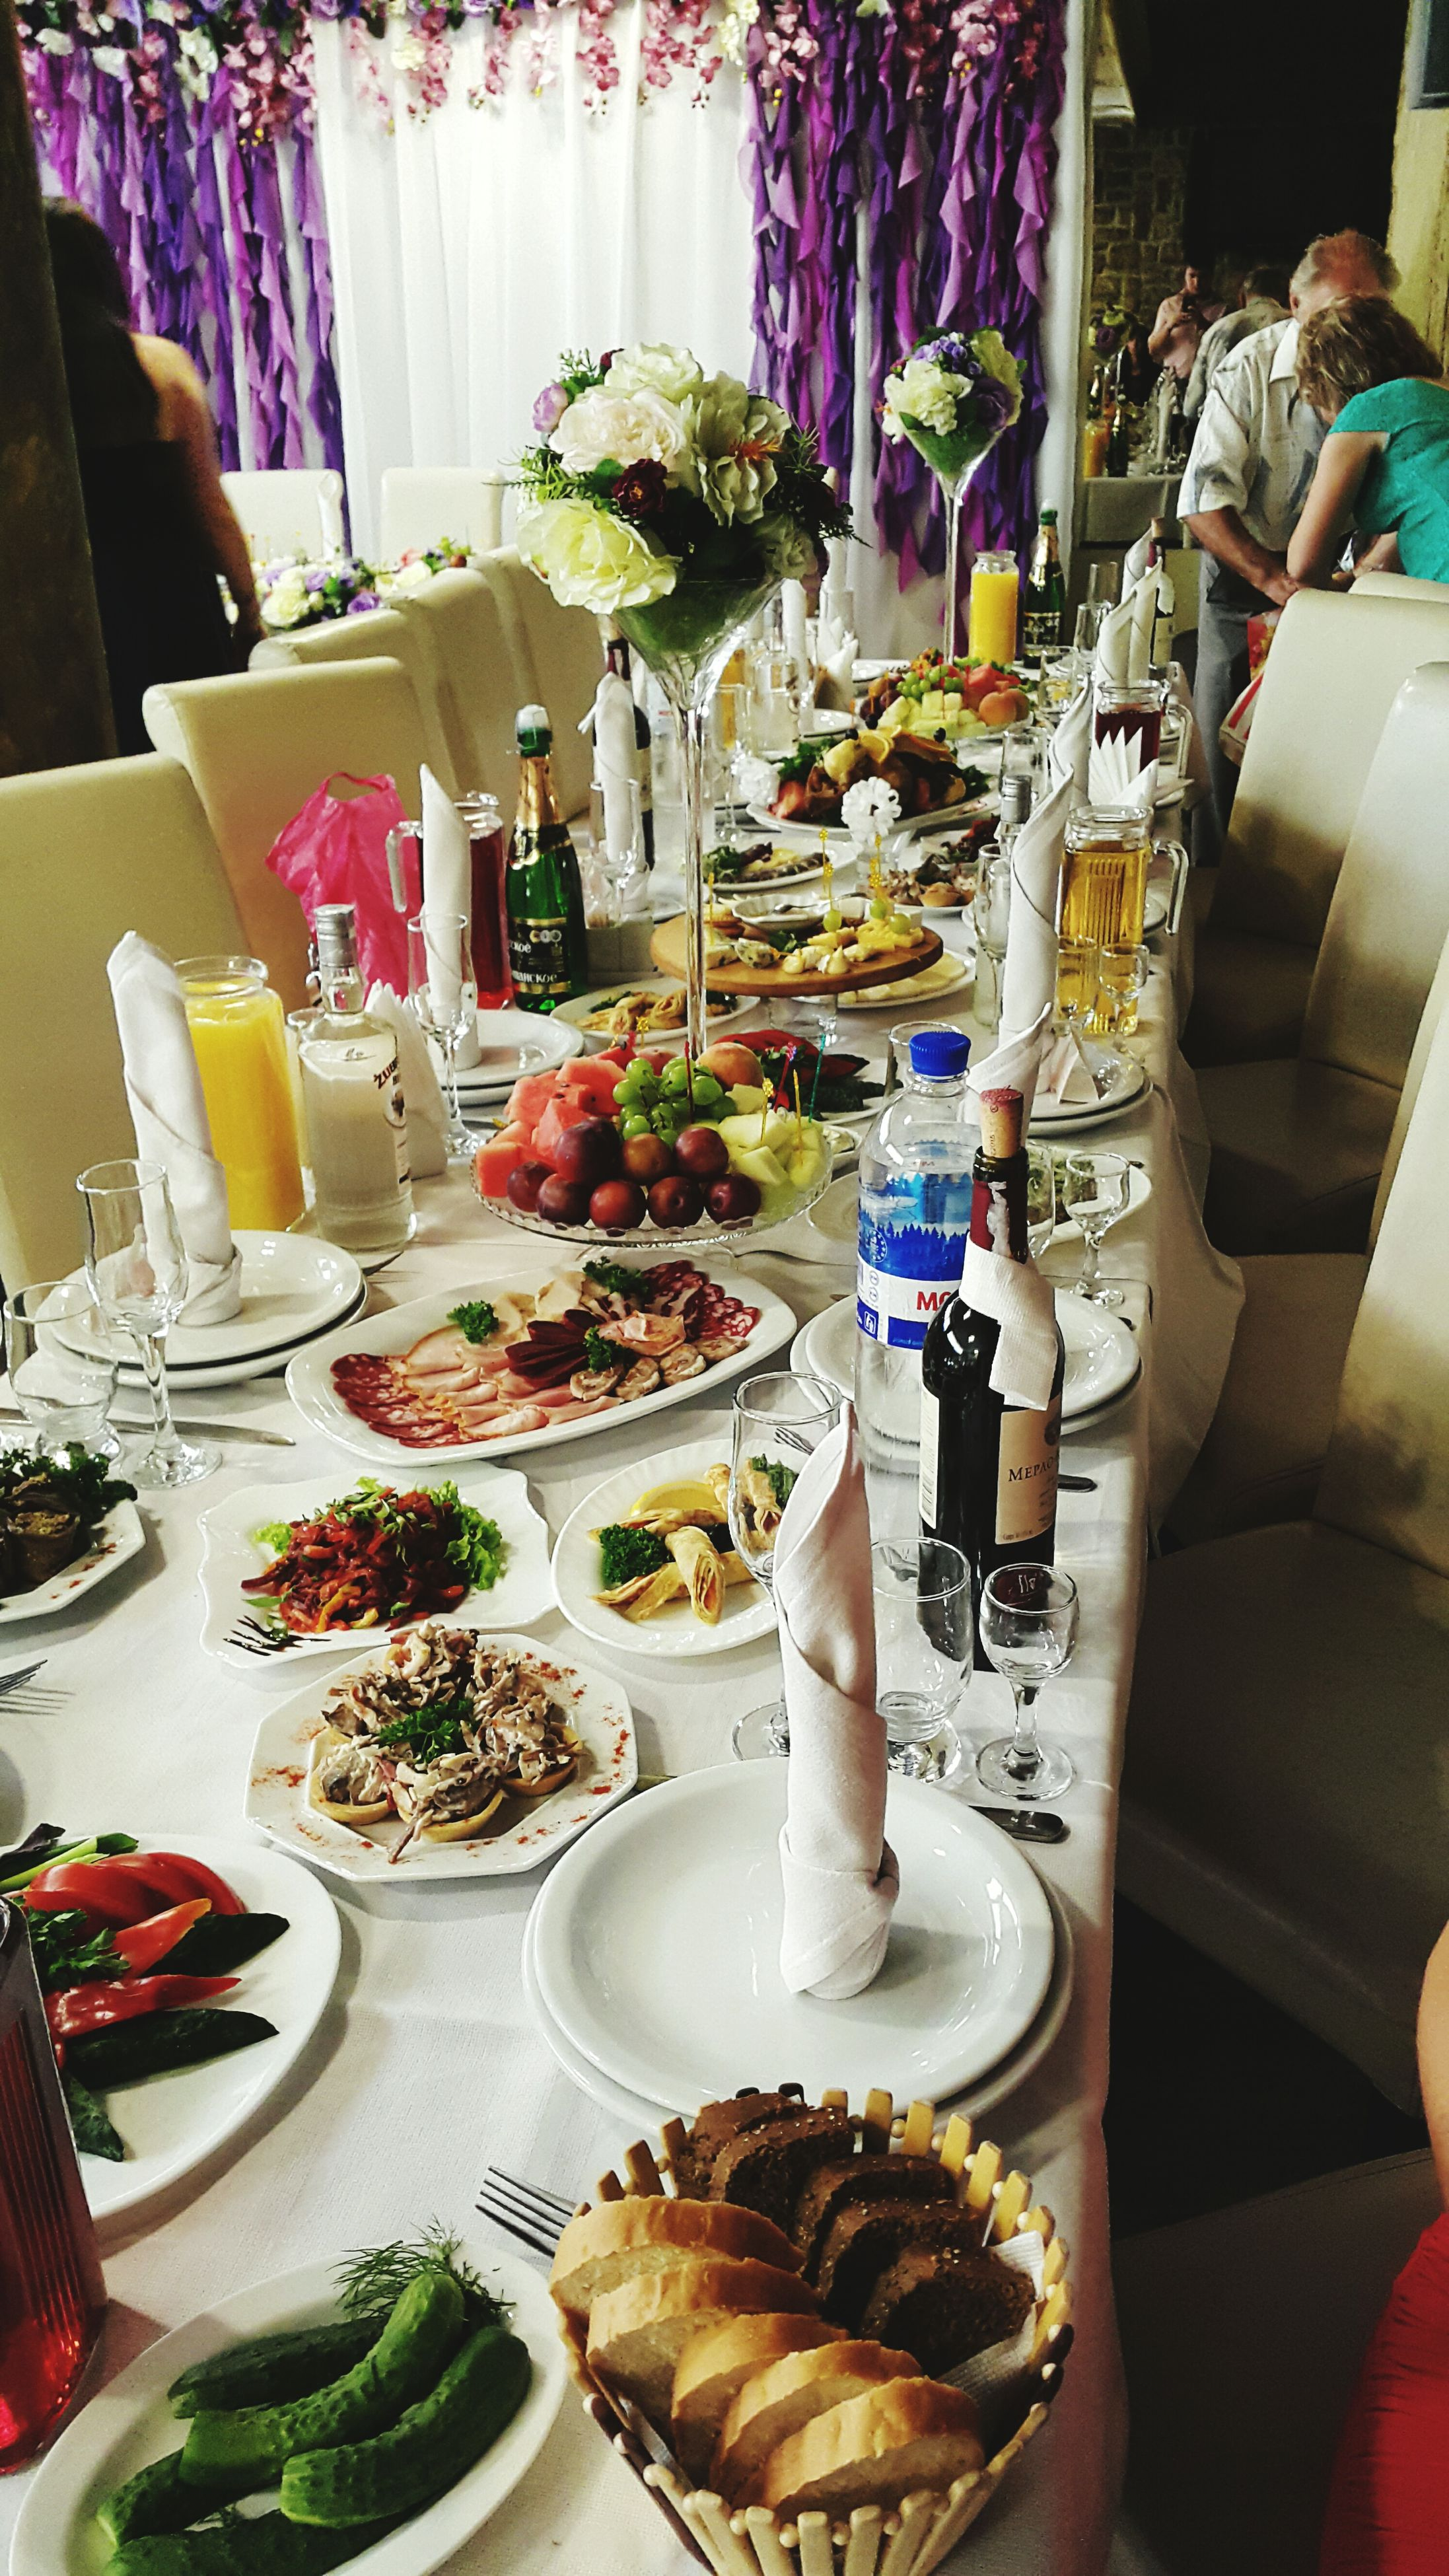 indoors, table, food and drink, food, restaurant, freshness, chair, plate, still life, dining table, drink, place setting, drinking glass, incidental people, ready-to-eat, high angle view, variation, absence, healthy eating, sidewalk cafe